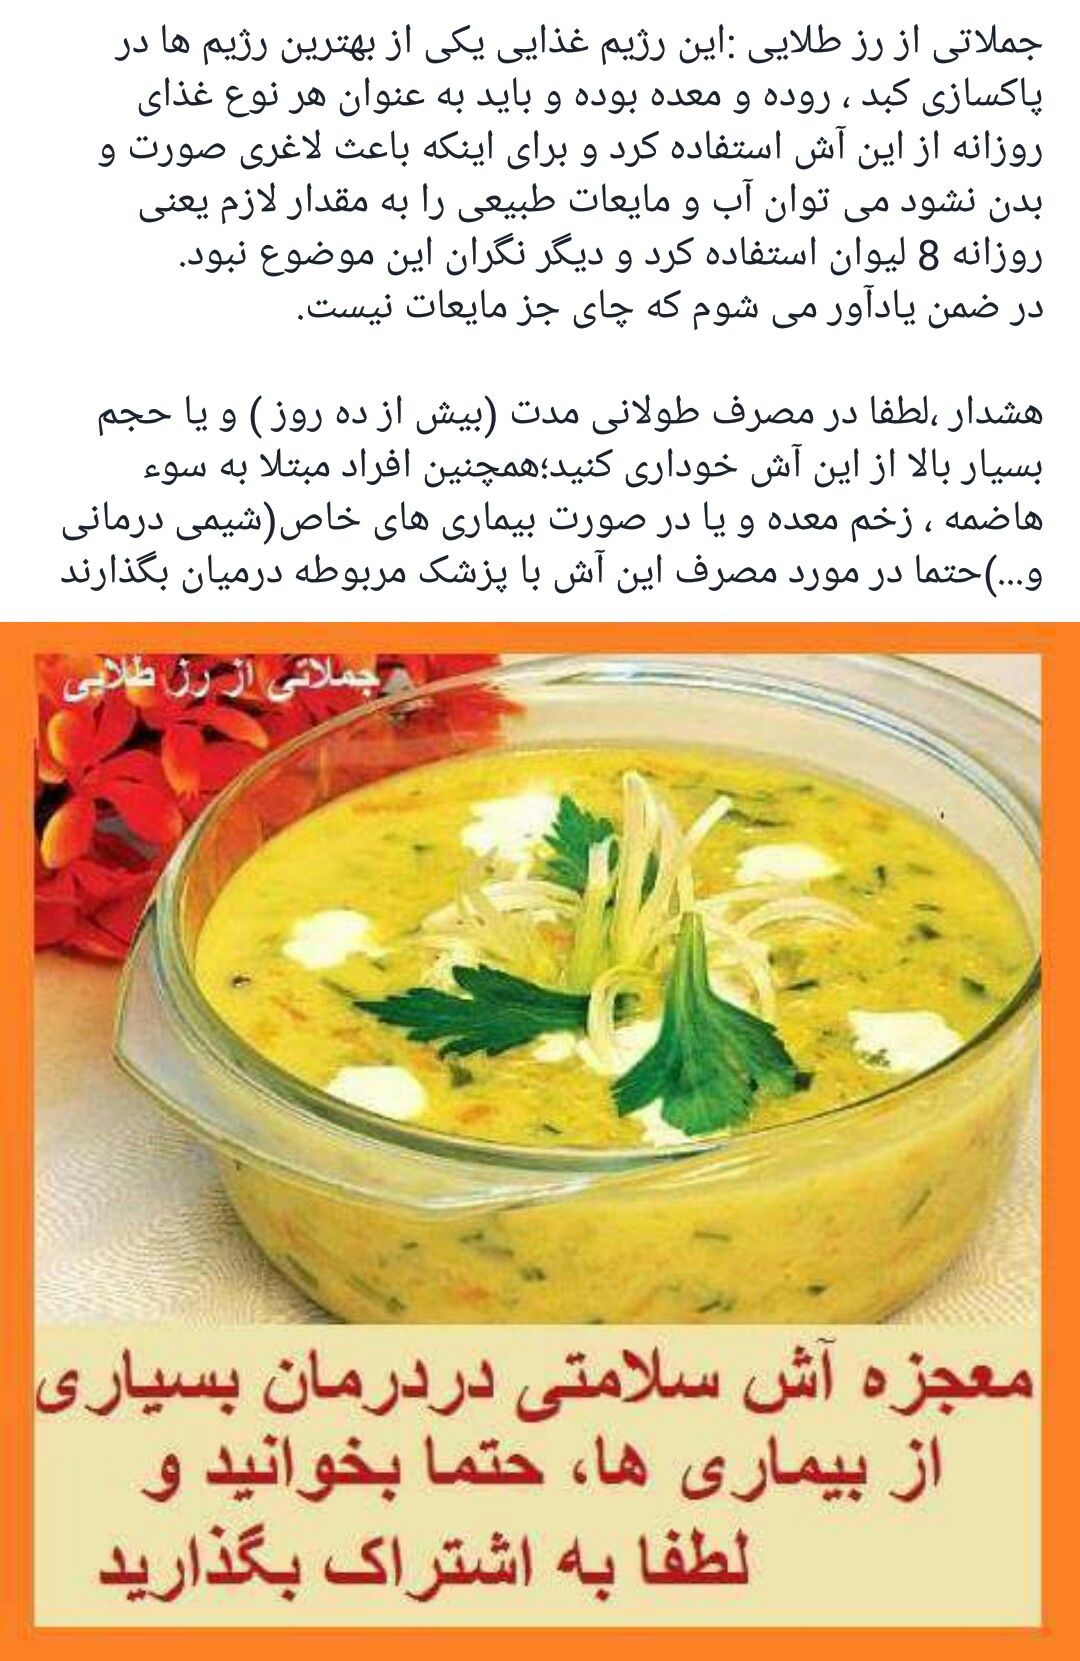 Pin By E Shakilzadeh On آسبزون Health Facts Food Cooking Recipes Desserts Iranian Food